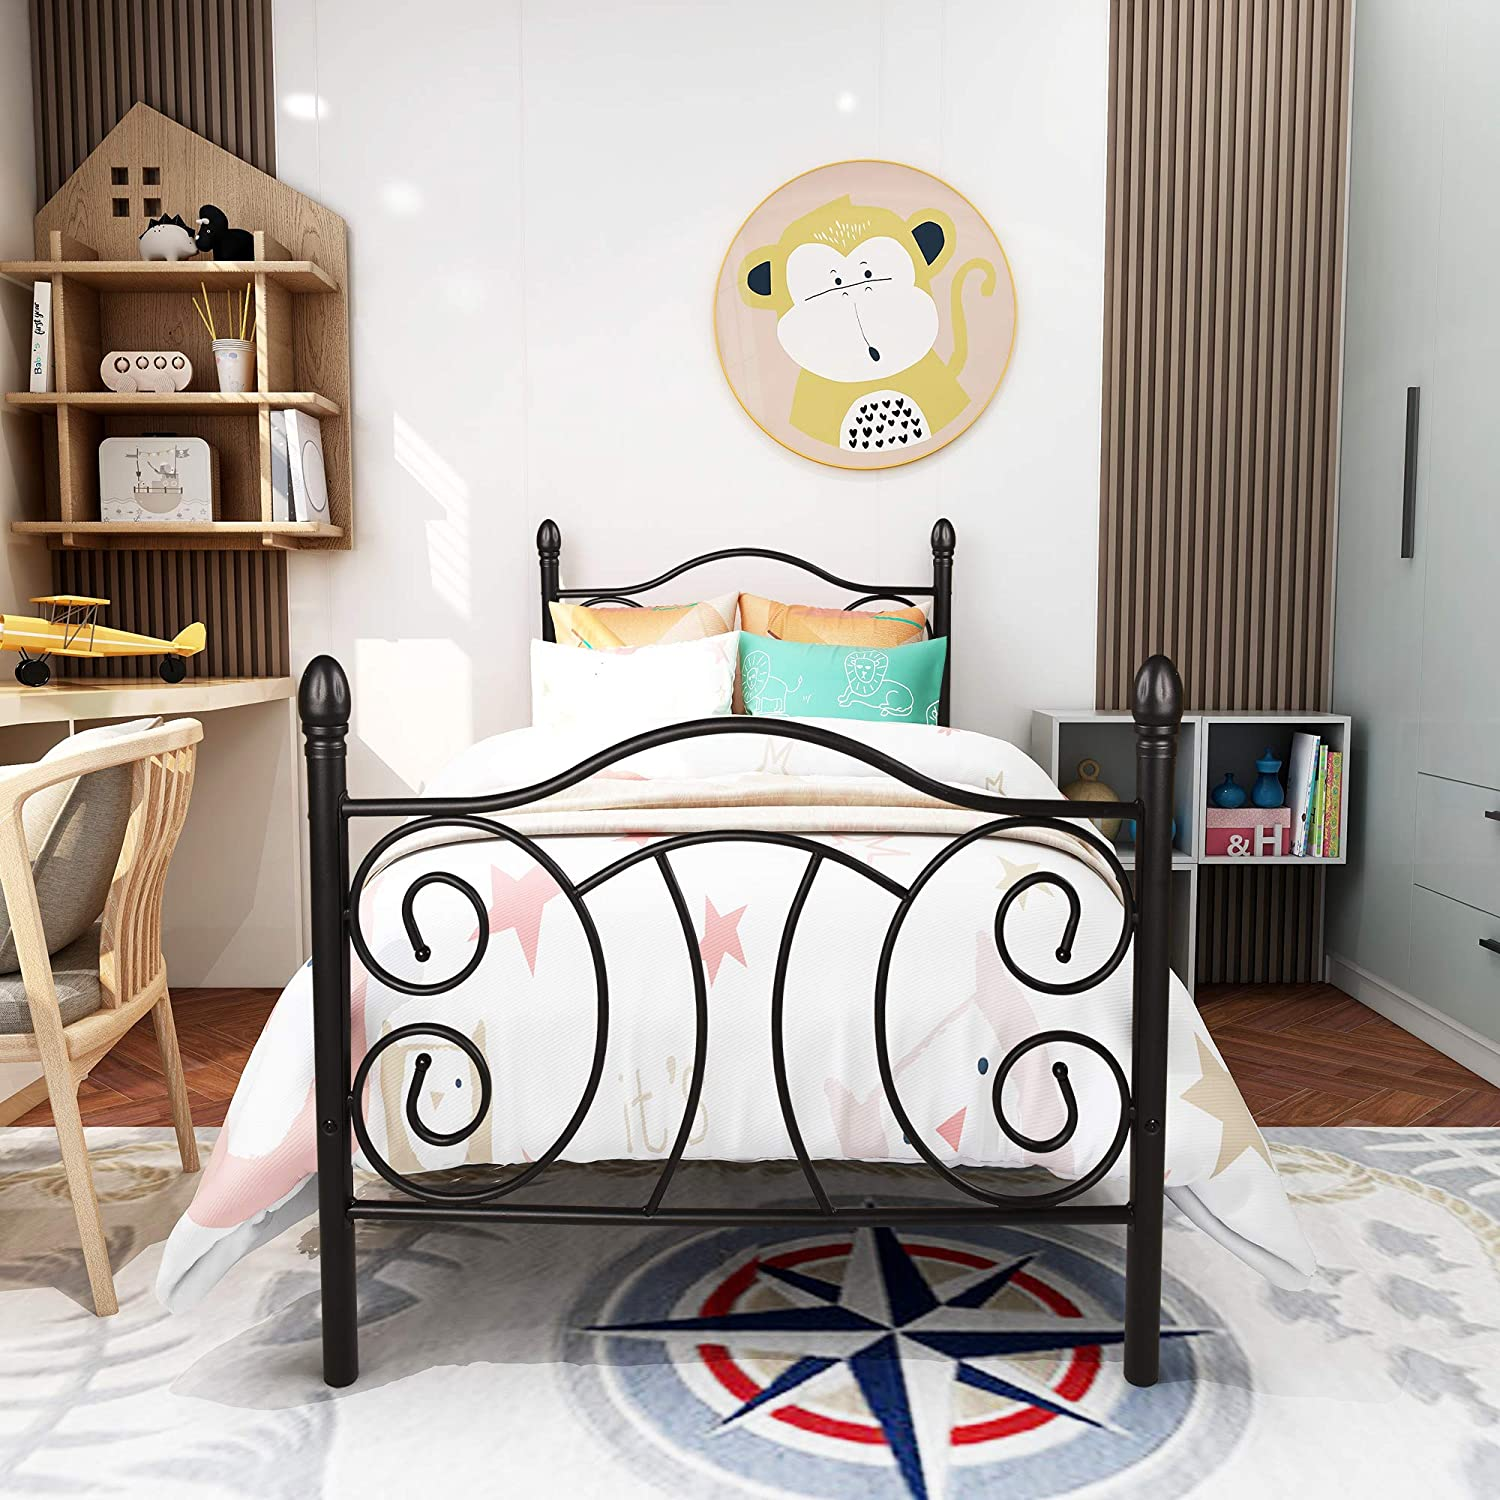 Elegant Home Products 12 Max 89% OFF inch Metal with Max 90% OFF Head Platform Frame Bed